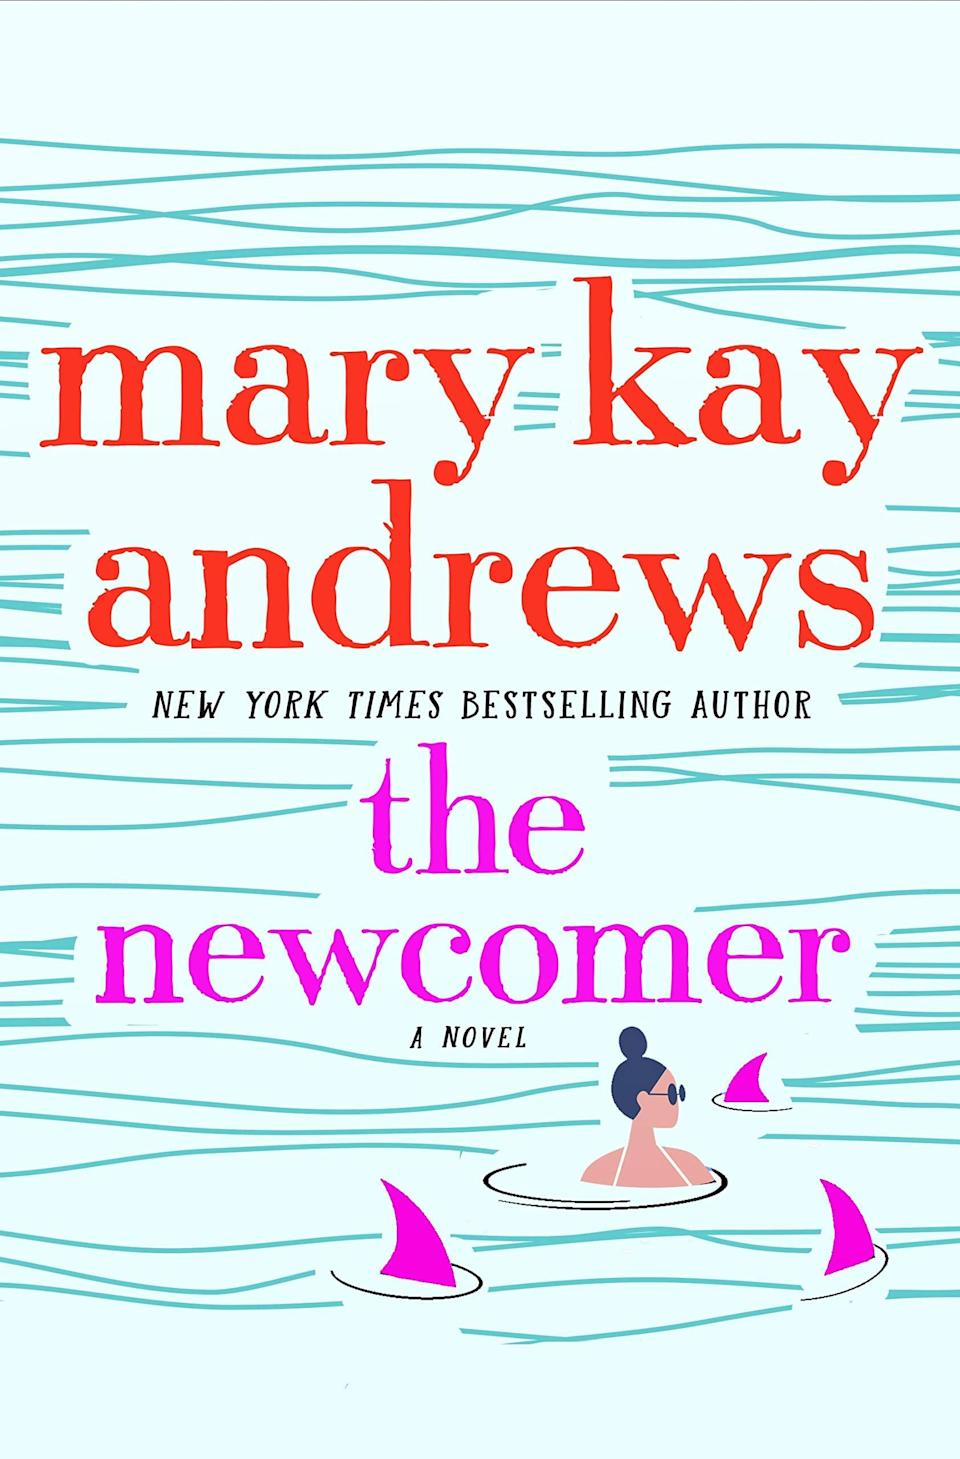 <p>If you want your next read to have a dash of mystery, suspense, romance, and family drama, then <span><strong>The Newcomer</strong></span> by Mary Kay Andrews is the book for you. After discovering her sister, Tanya, dead, Letty hits the road with her niece, Maya, in hopes of evading her sister's dangerous ex. Due to a mysterious magazine story left behind by Tanya, Letty and Maya end up reinventing themselves at a rundown motel, where getting too close to anyone could mean blowing their cover. </p> <p><em>Out May 4</em></p>